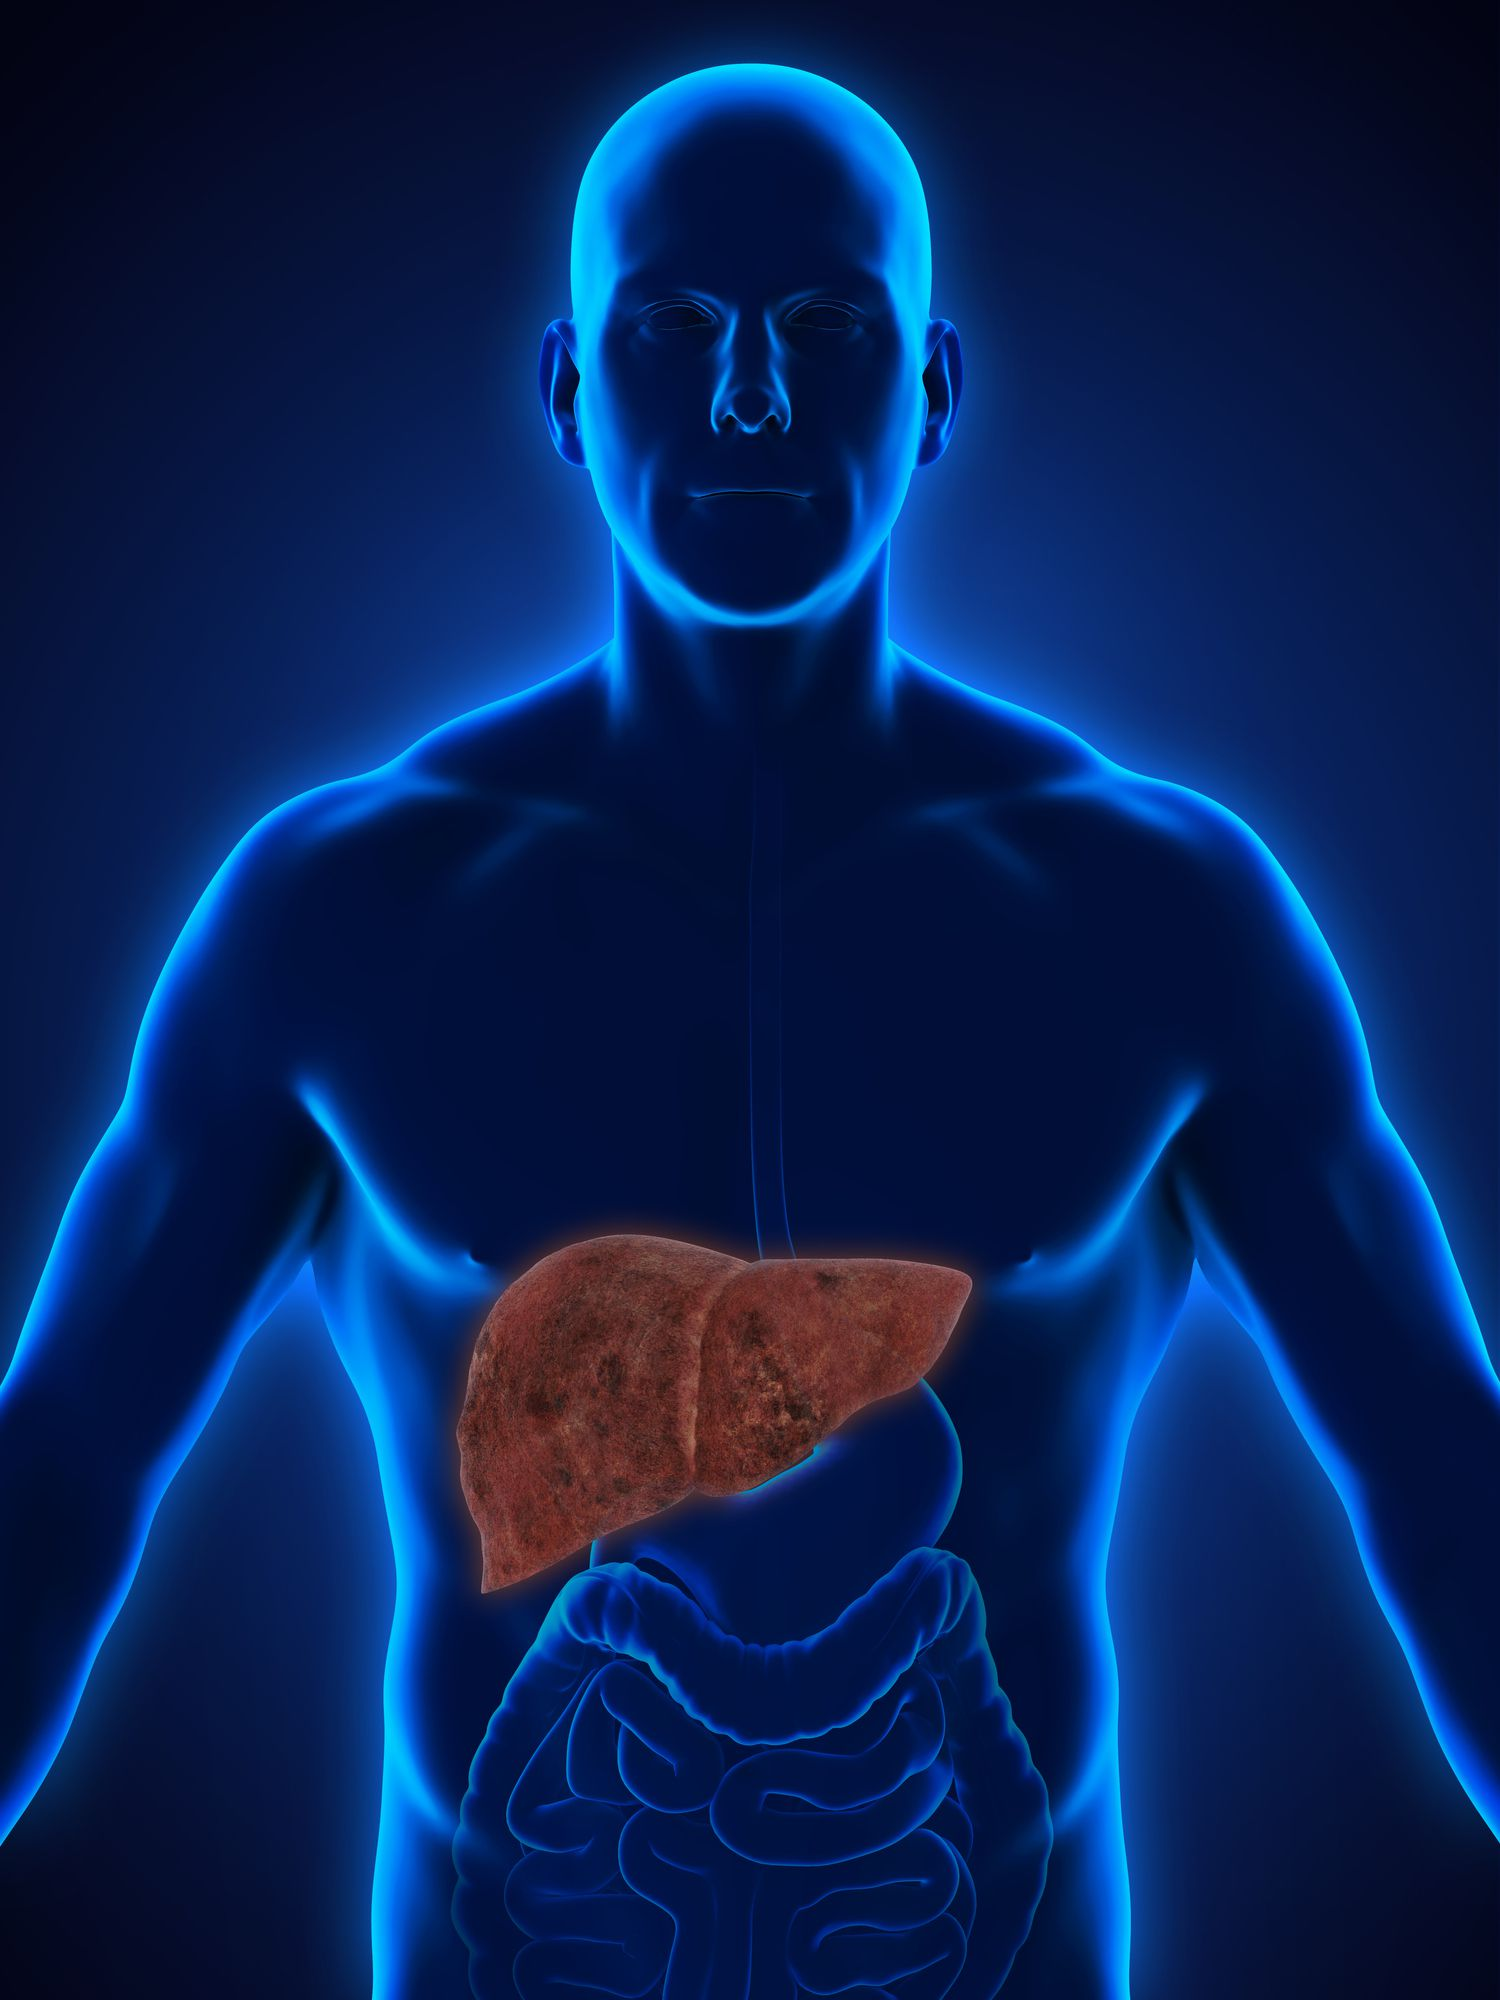 An Overview of Fatty Liver Disease